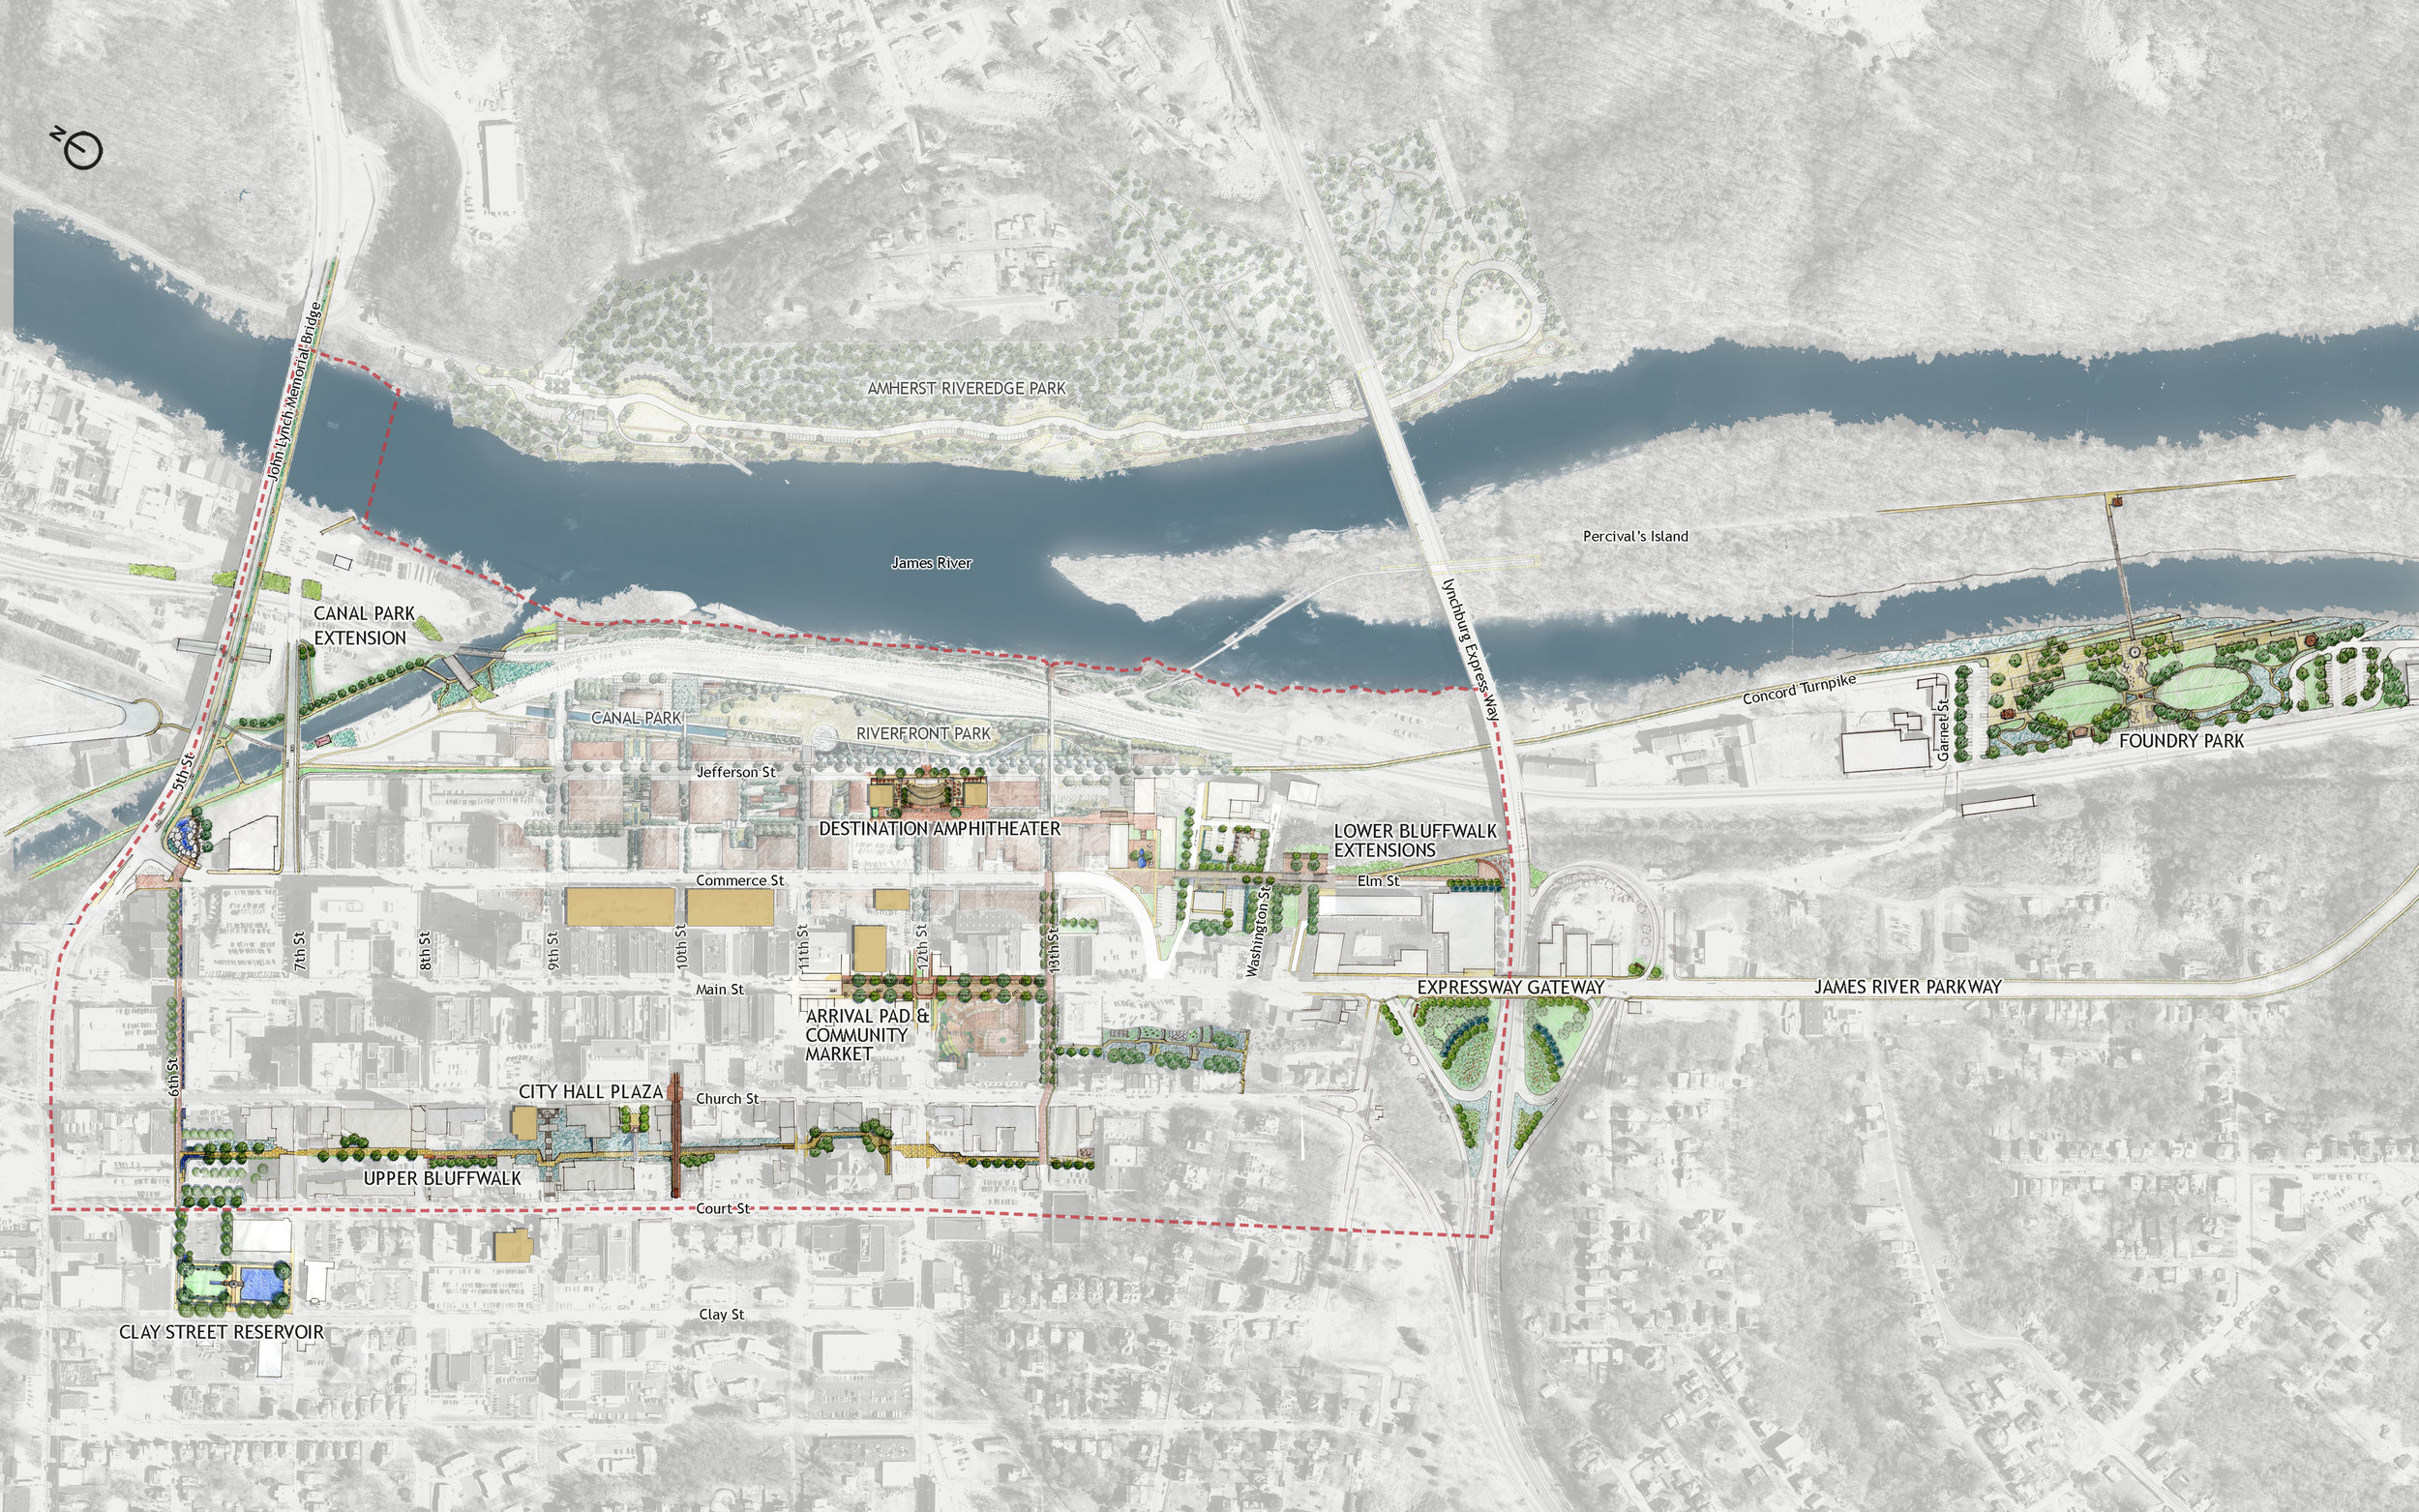 Lynchburg Downtown 2040 Plan - Community Planning by Hill Studio